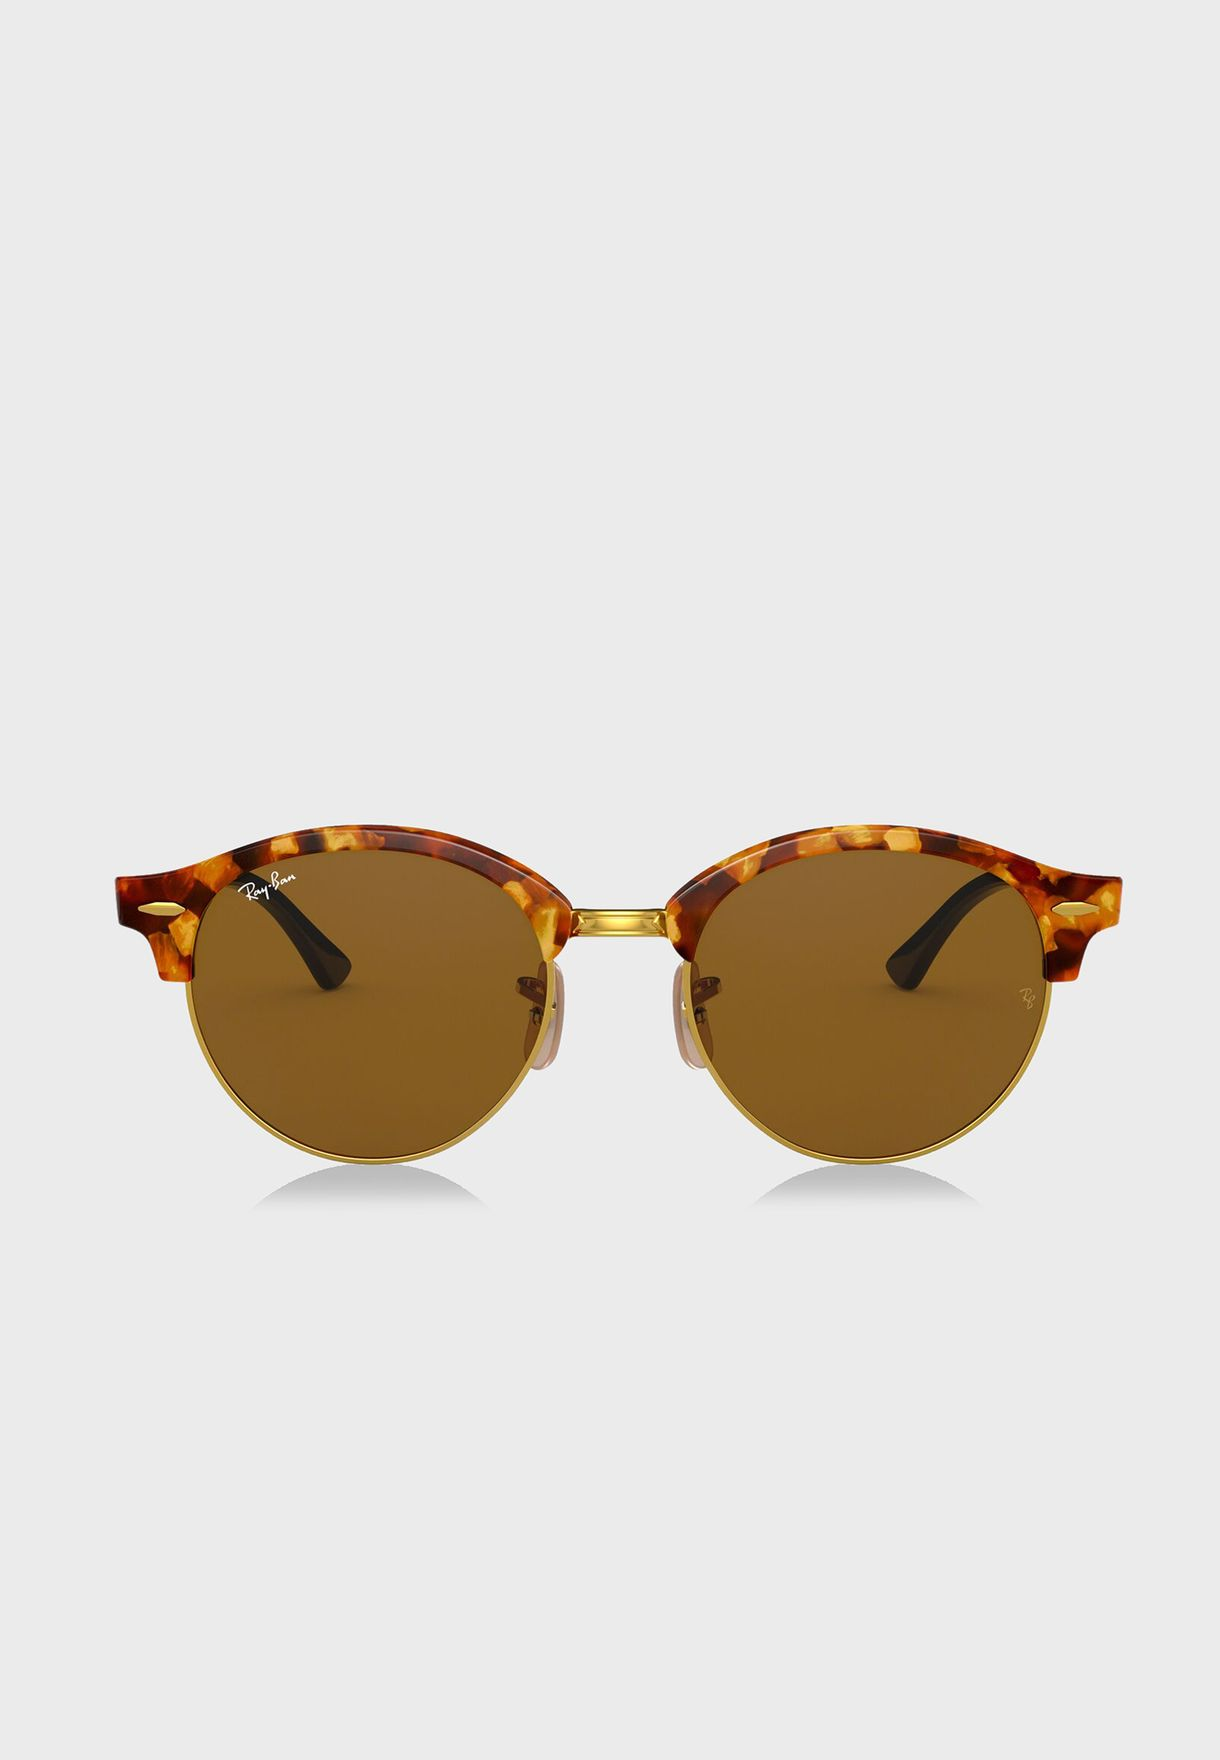 0RB4246 Icons Clubmasters Sunglasses